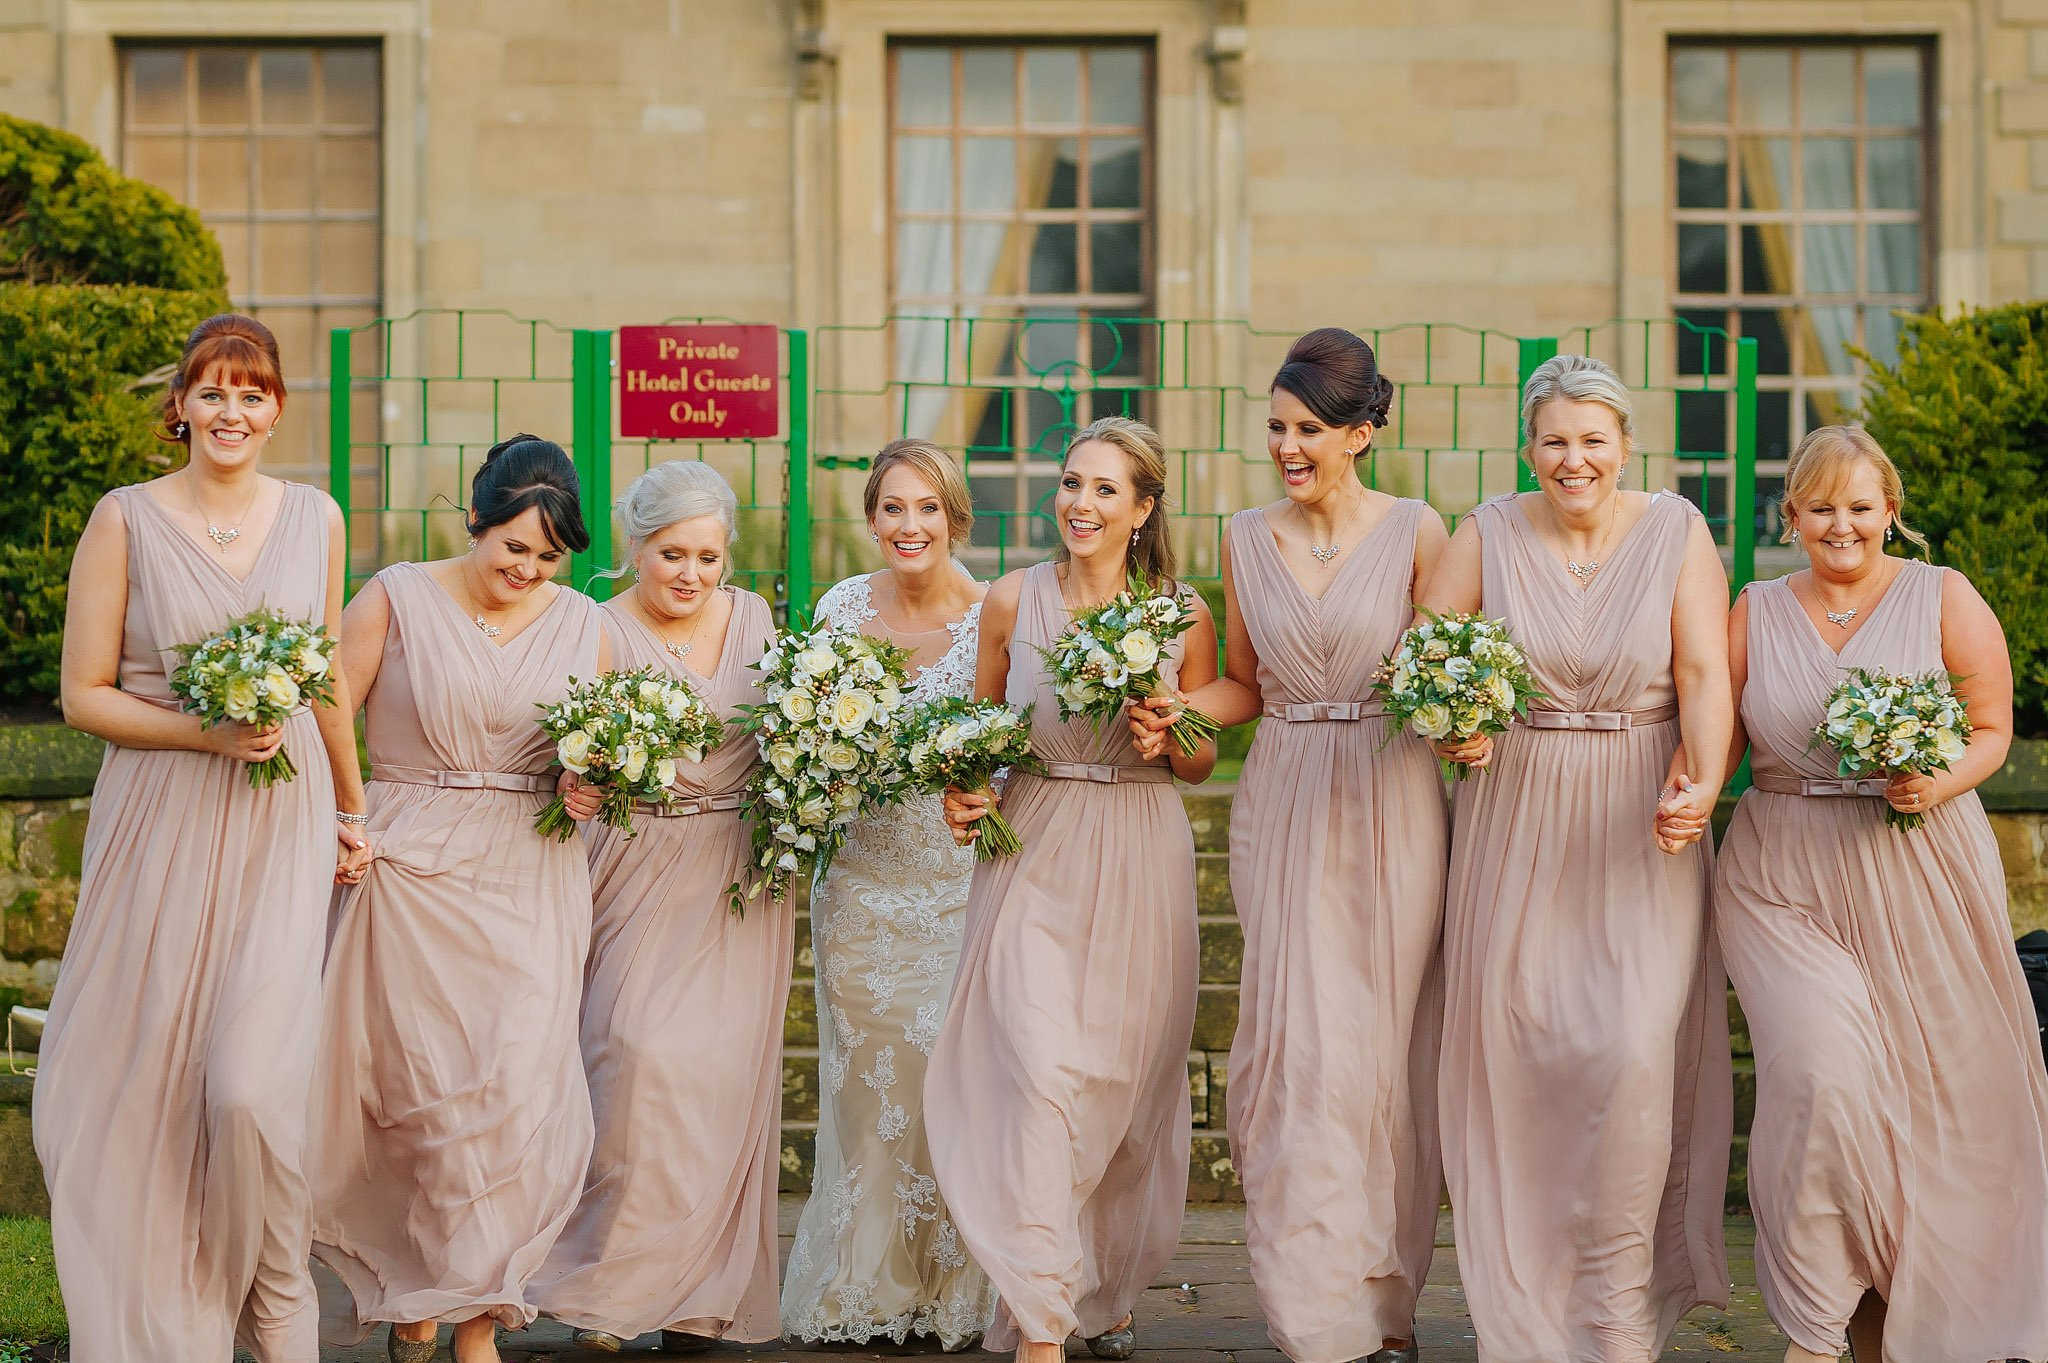 coombe abbey wedding coventry 75 - Coombe Abbey wedding in Coventry, Warwickshire - Sam + Matt